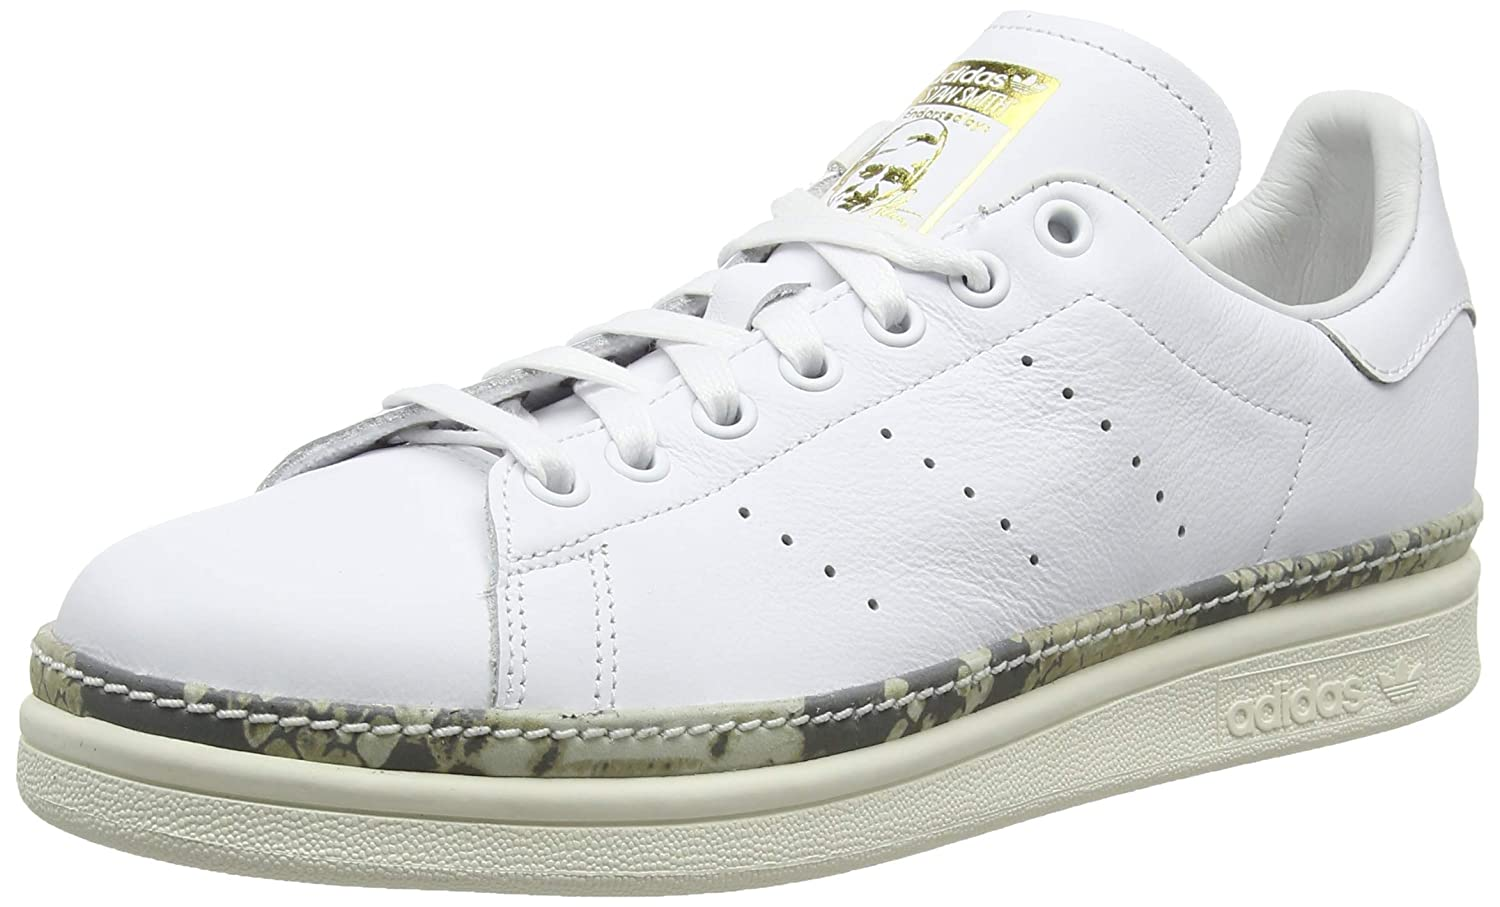 WChaussures Femme Adidas Fitness De Bold Stan New Smith tsxhrCdQ